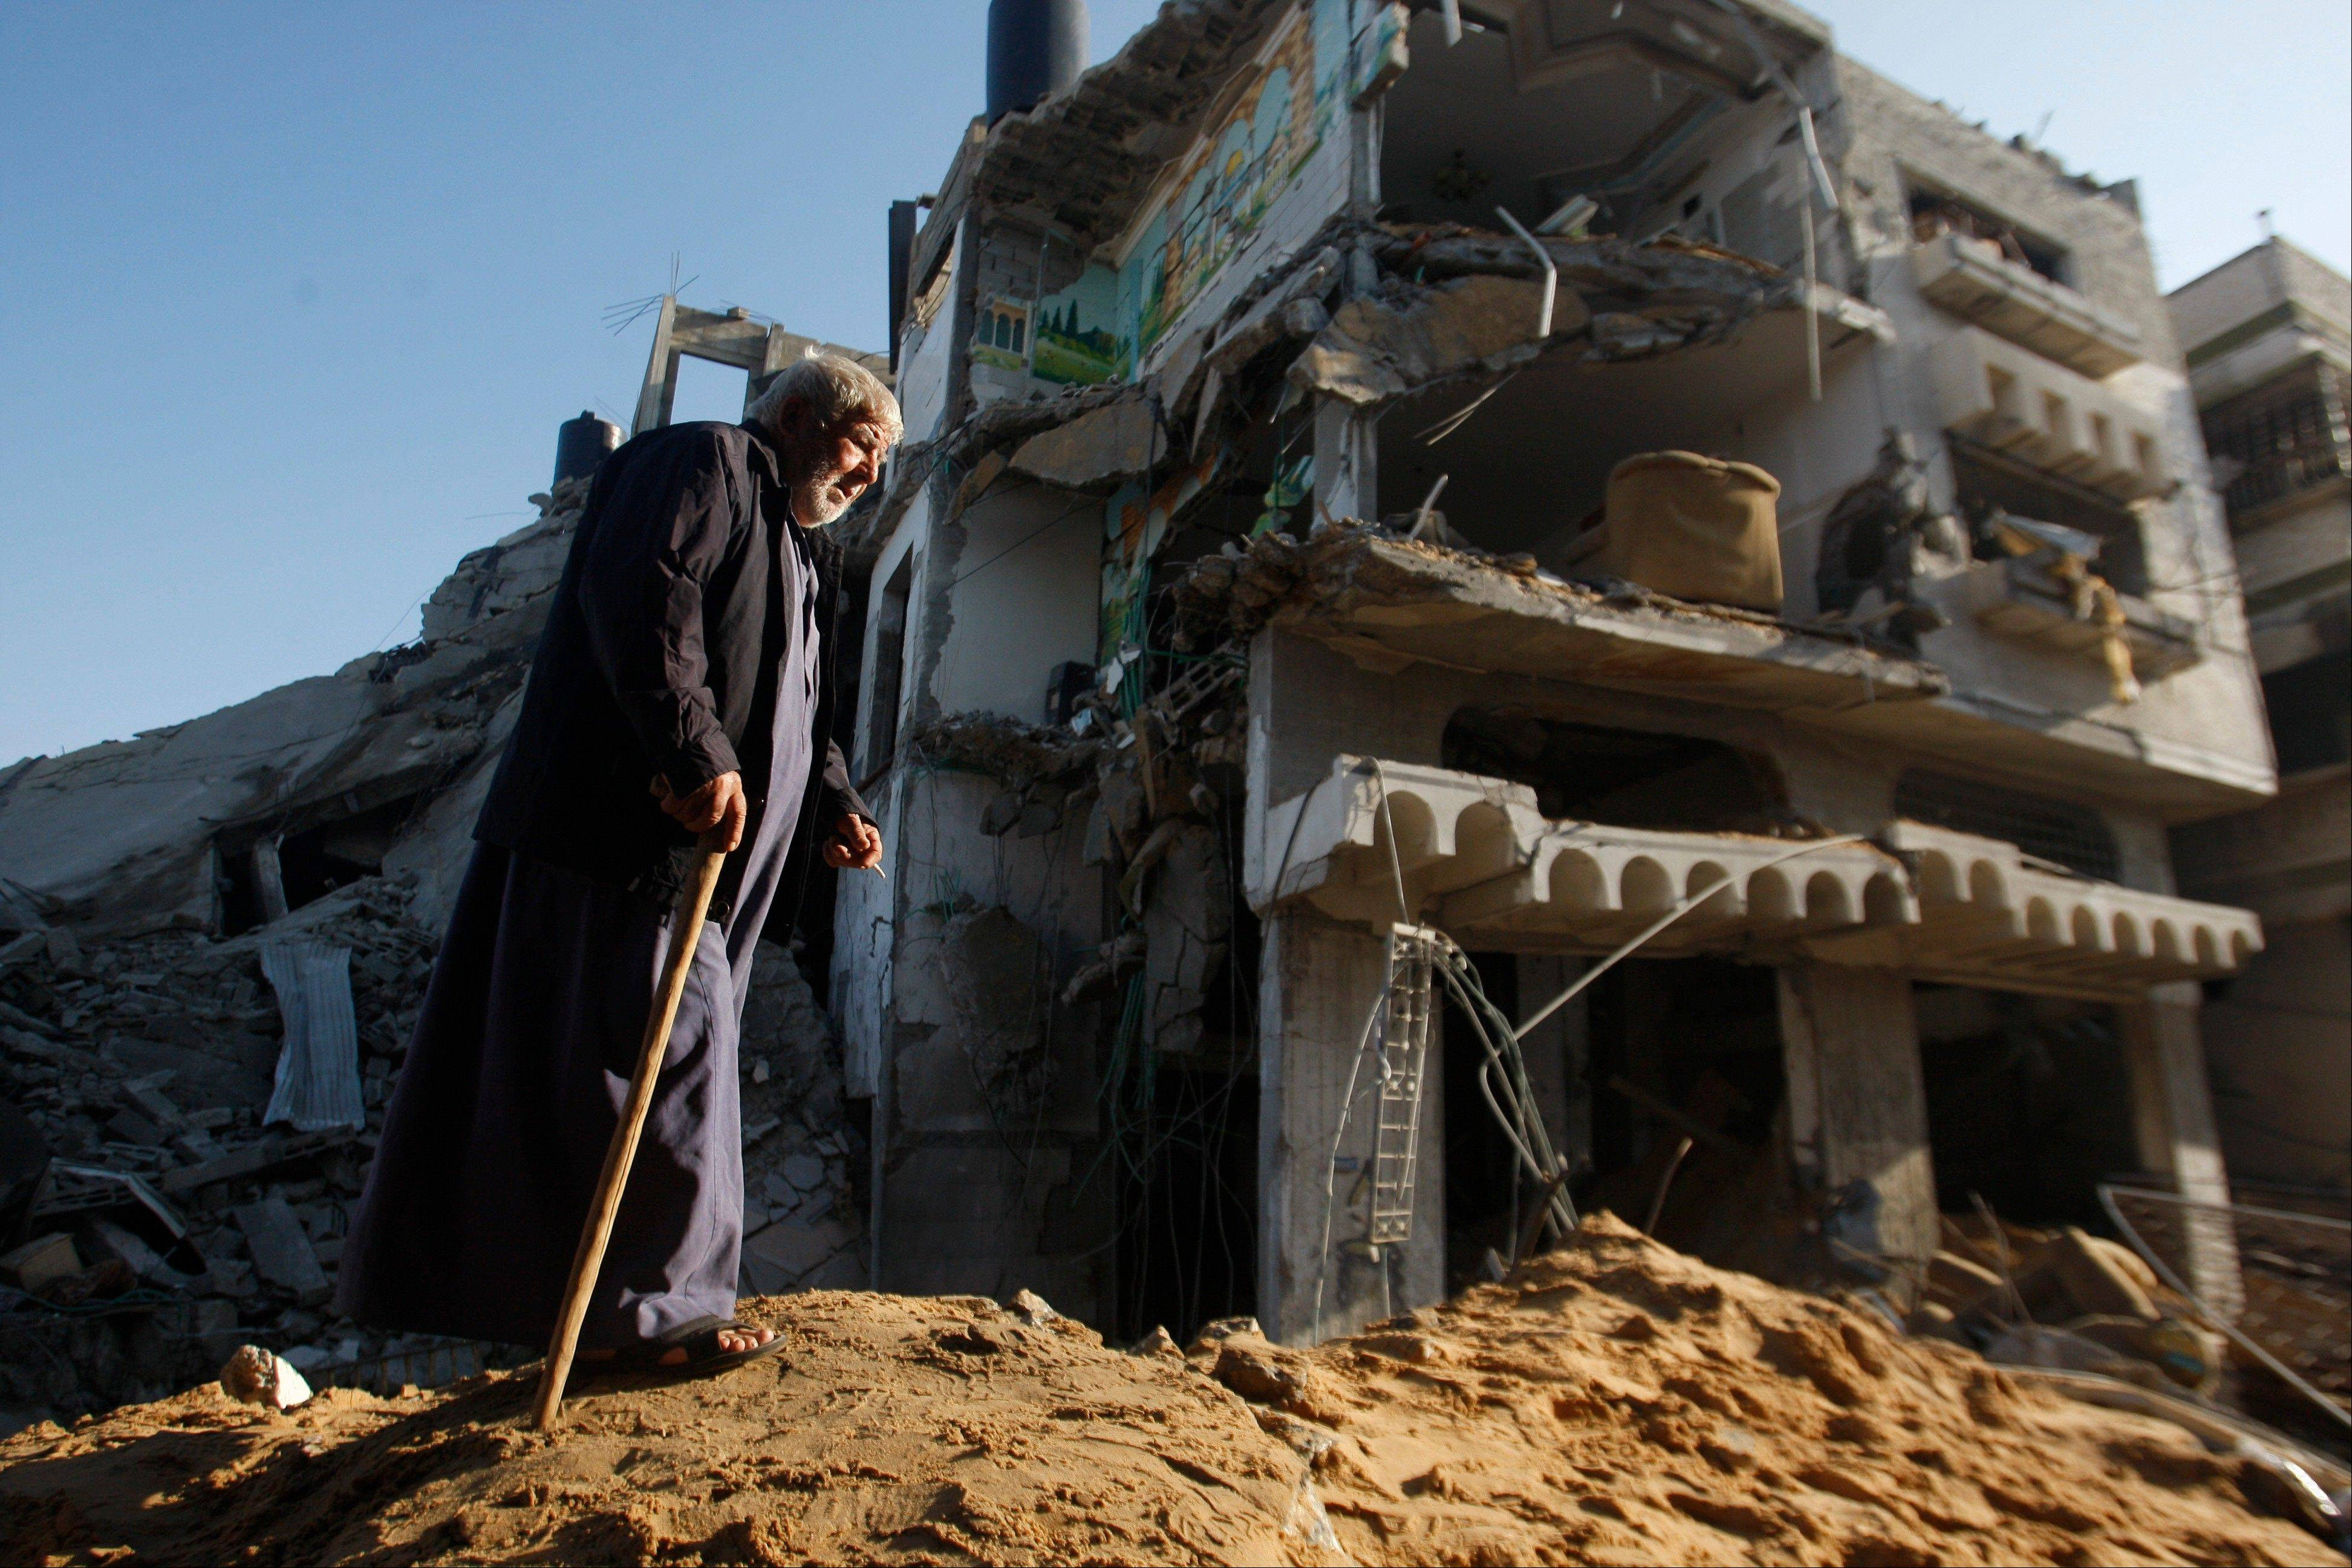 Israel-Hamas cease-fire remains elusive